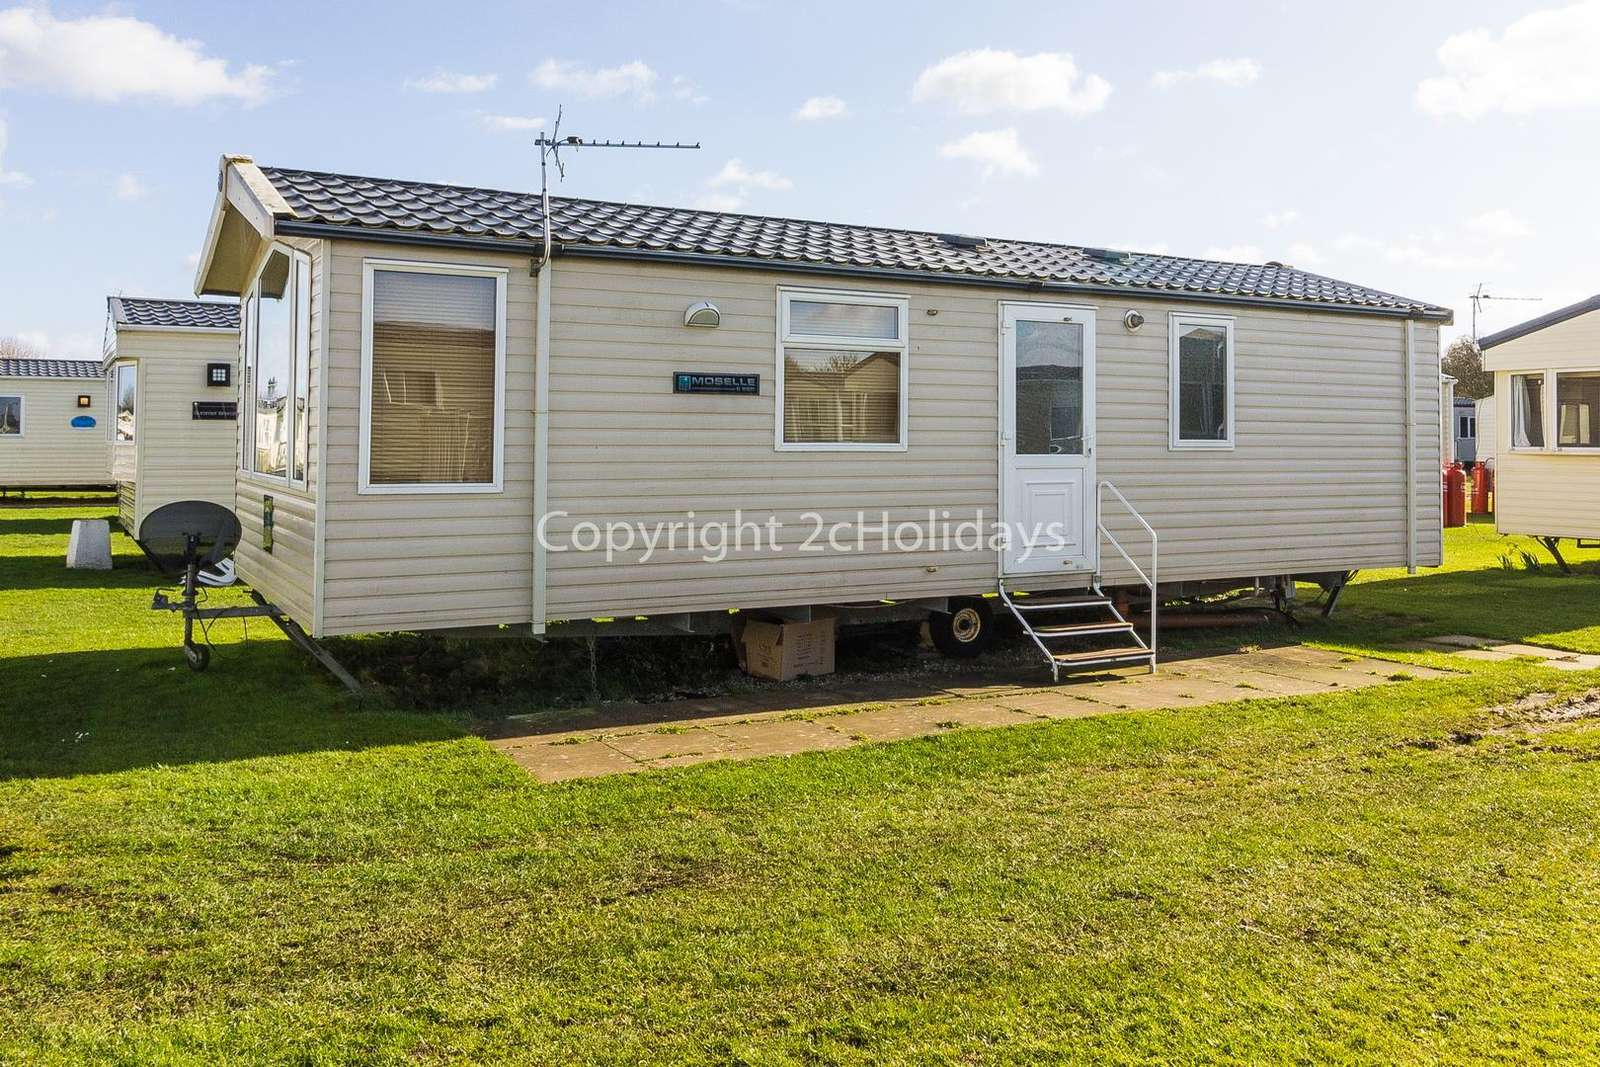 35039B – Beaver Road area, 2 bed, 6 berth caravan with D/G and C/H. Diamond rated. - property